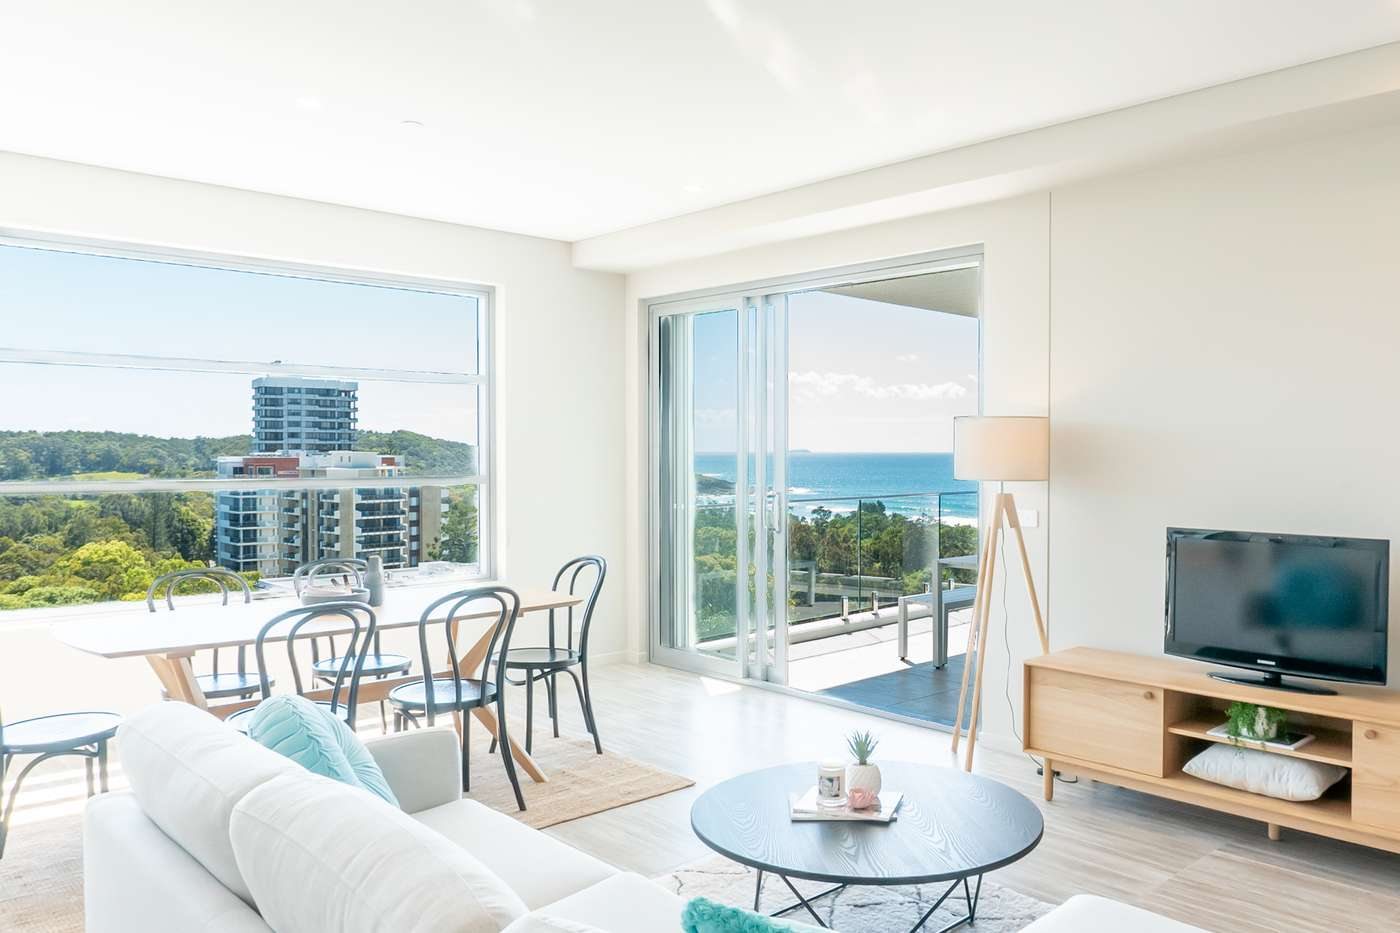 Main view of Homely apartment listing, 40/123 Park Beach Road, Coffs Harbour, NSW 2450